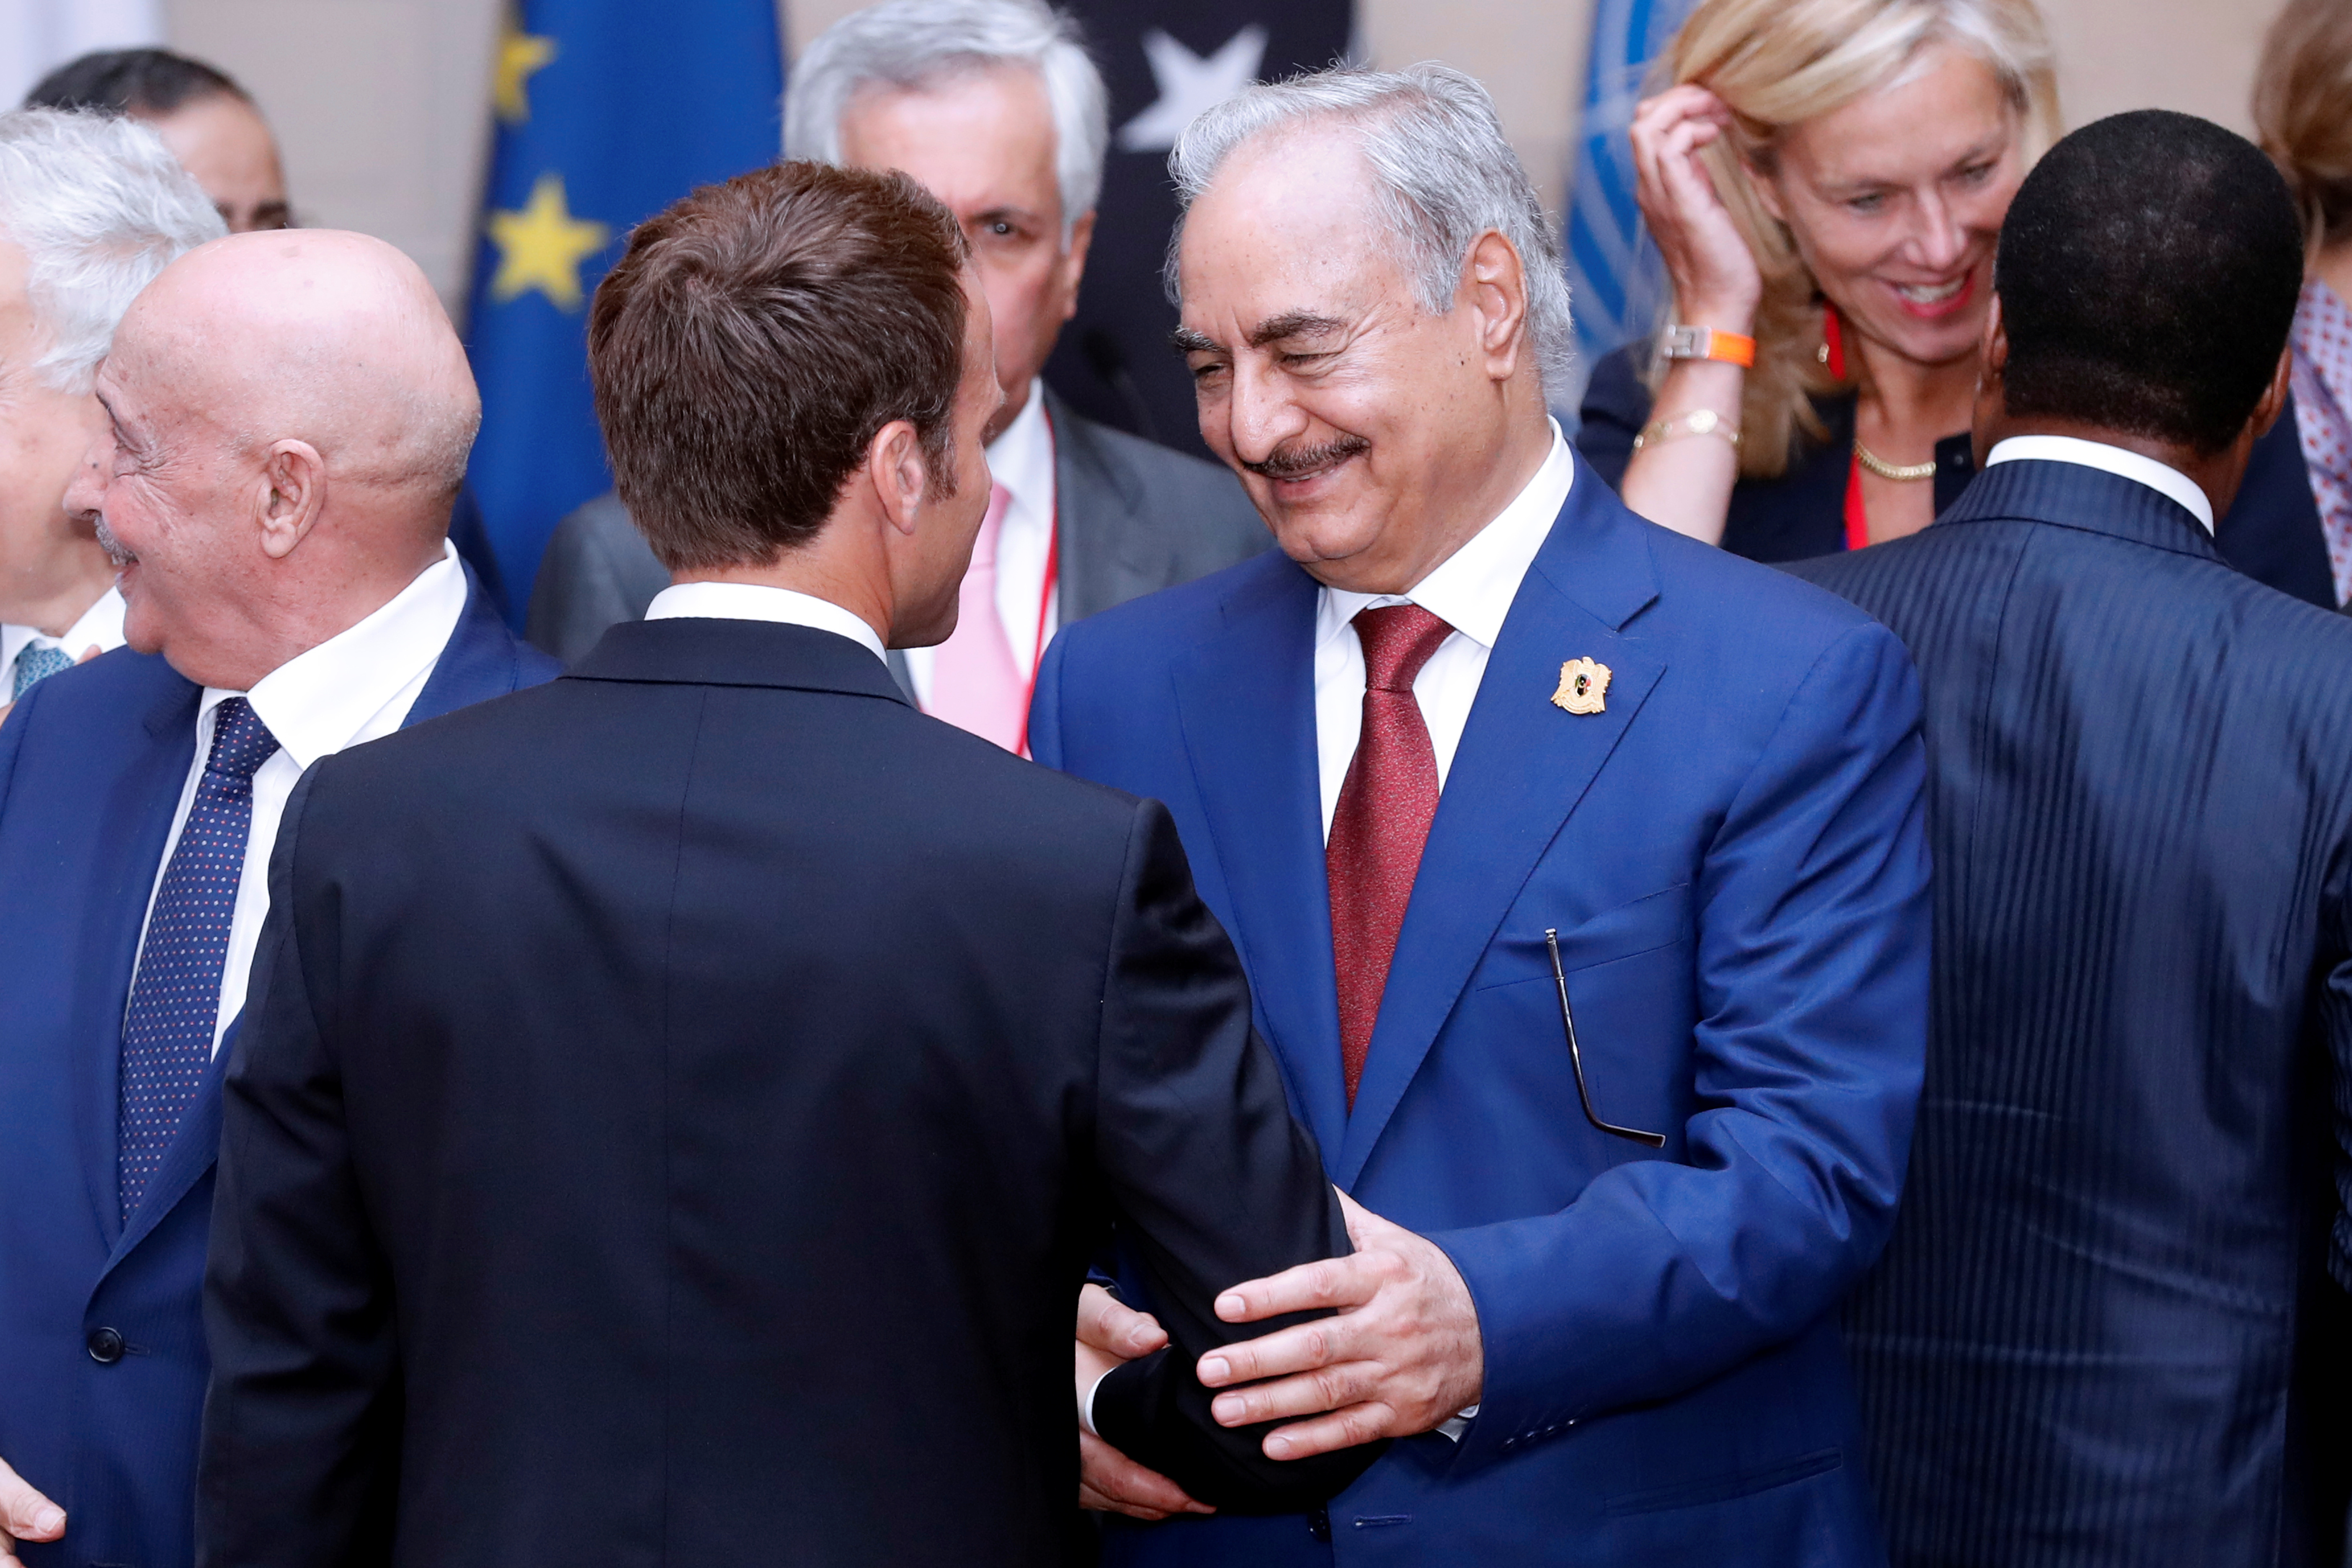 FILE - Khalifa Haftar, the military commander who dominates eastern Libya, shakes hands with French President Emmanuel Macron in Paris, France, May 29, 2018.